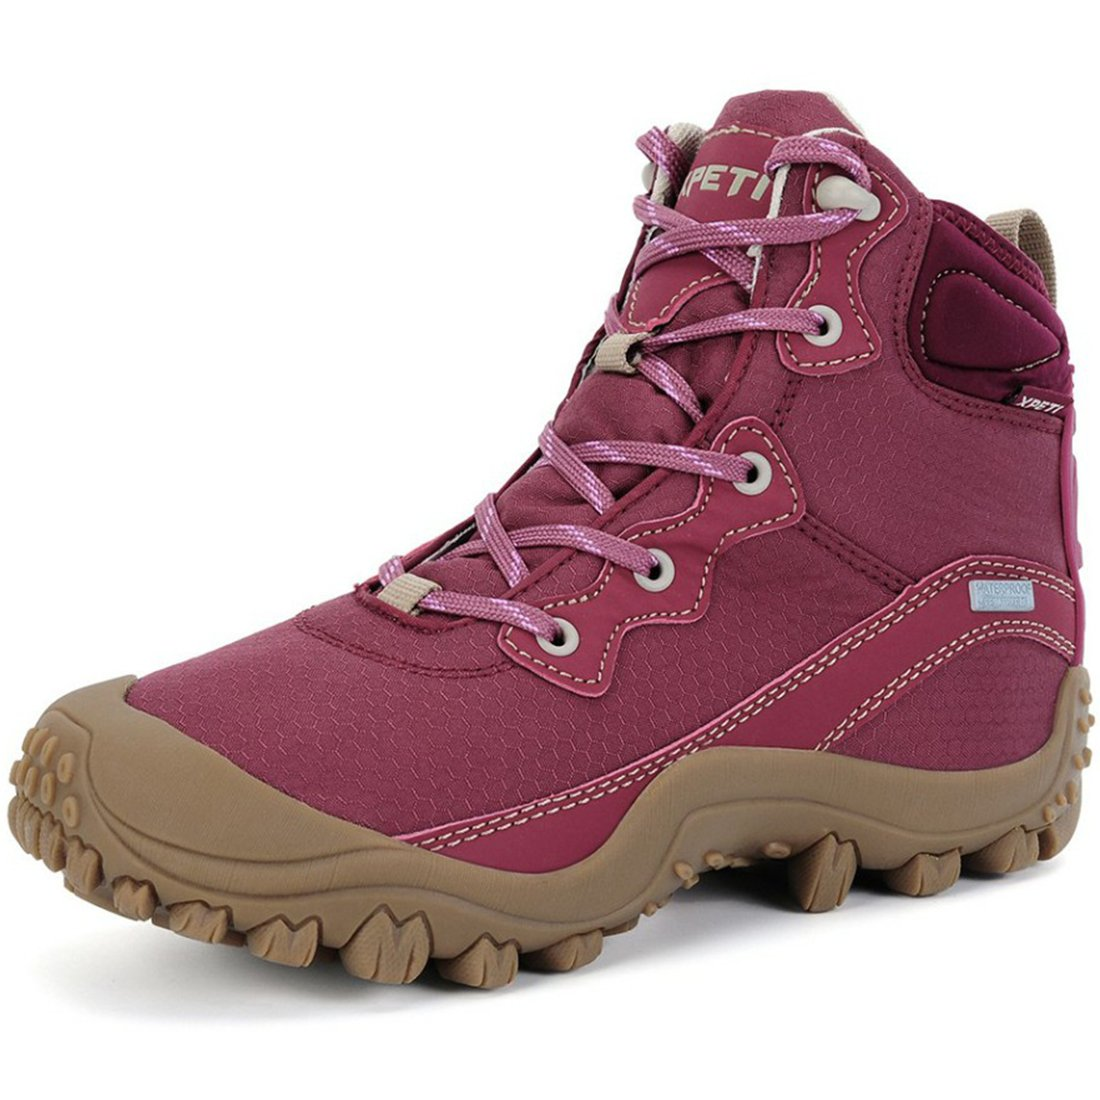 XPETI Women's Dimo Mid Waterproof Hiking Outdoor Boot Red Wine 10